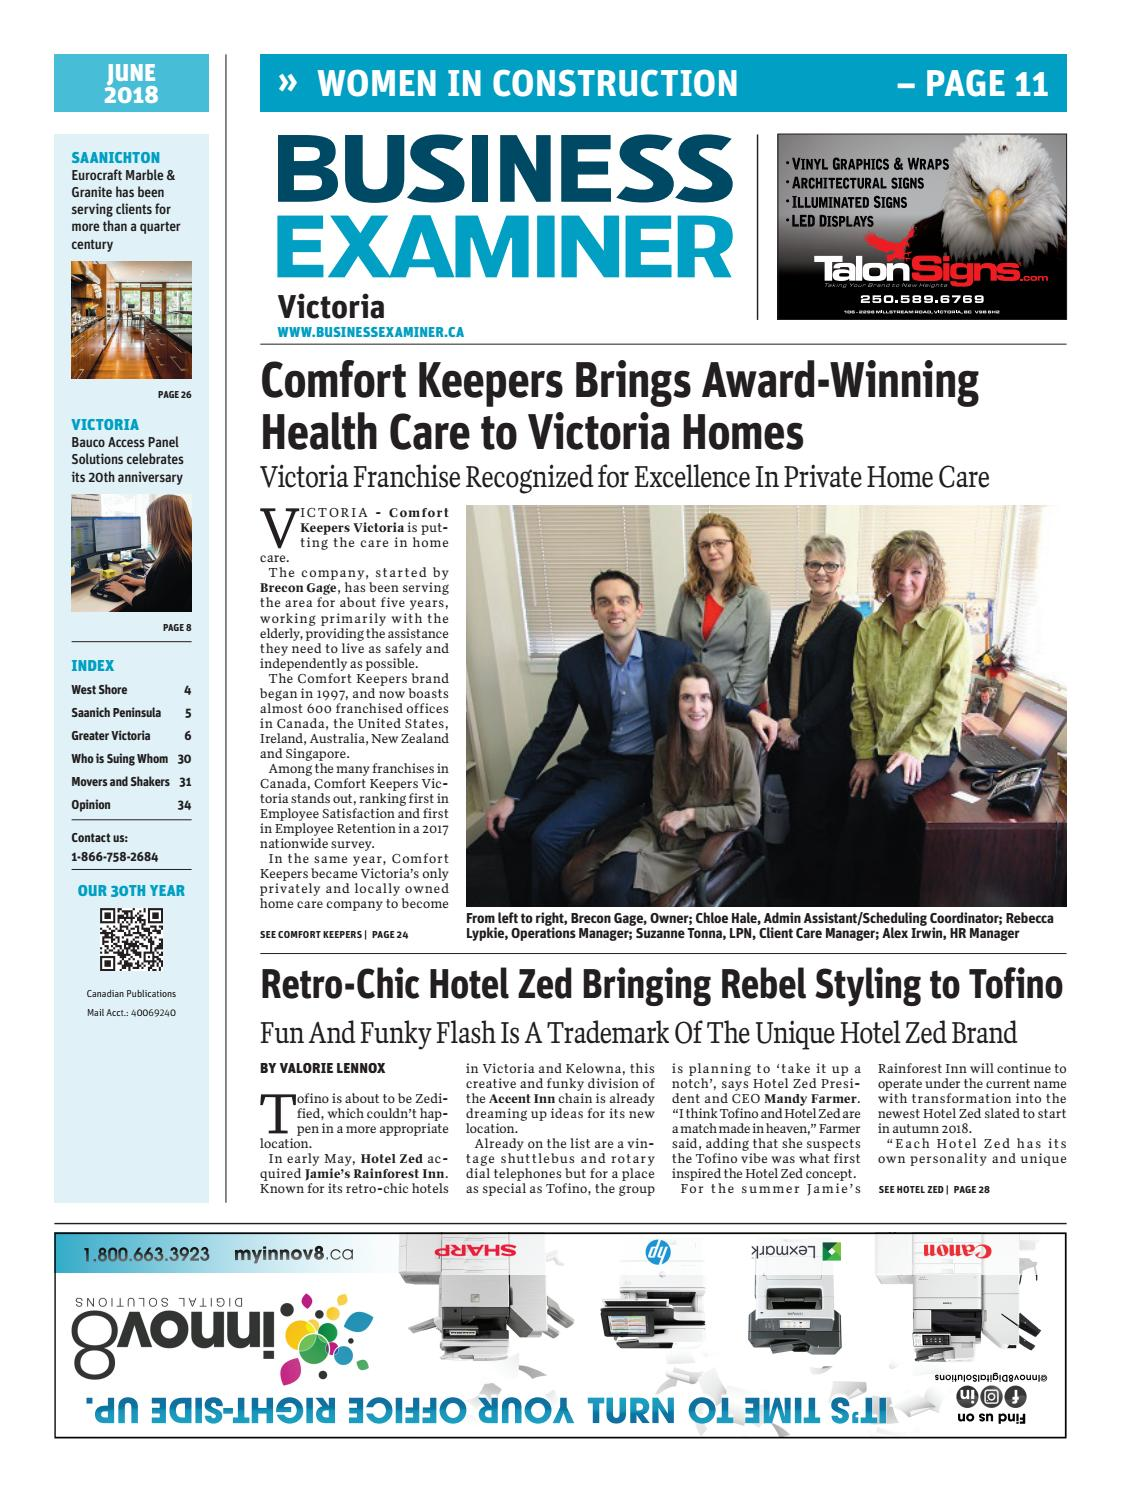 Business Examiner Victoria June 2018 By Media Cascadia Hydrogen Practical Guide To Free Energy Devices Group Issuu